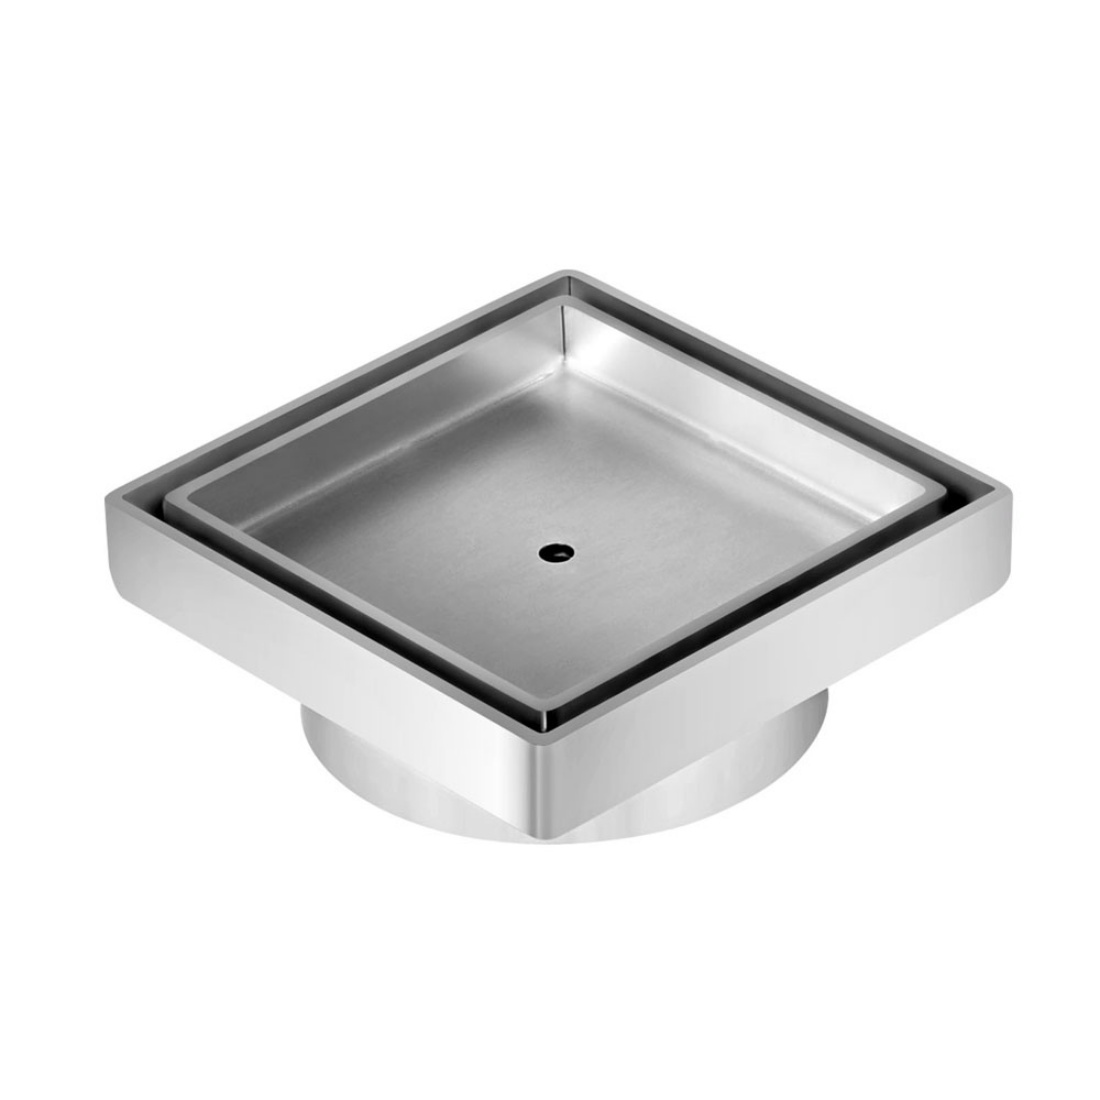 Square Stainless Steel Shower Grate Drain Floor Bathroom 95mm Depth